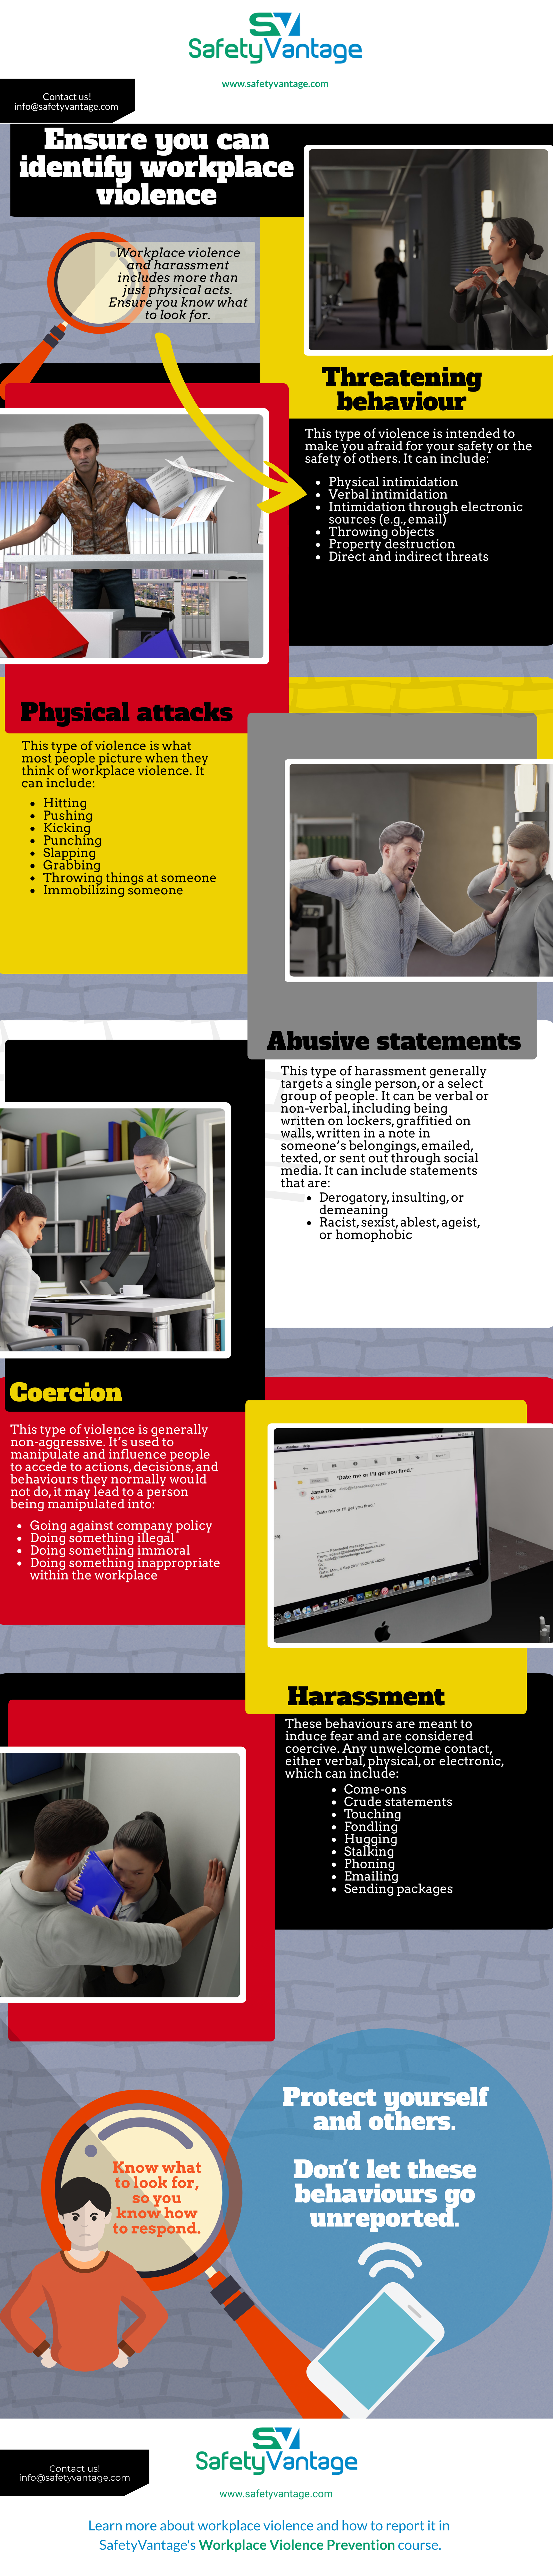 InfoGraphic - Workplace violence and harassment is dangerous, and it includes more than just violent acts. Ensure you know what to look for.